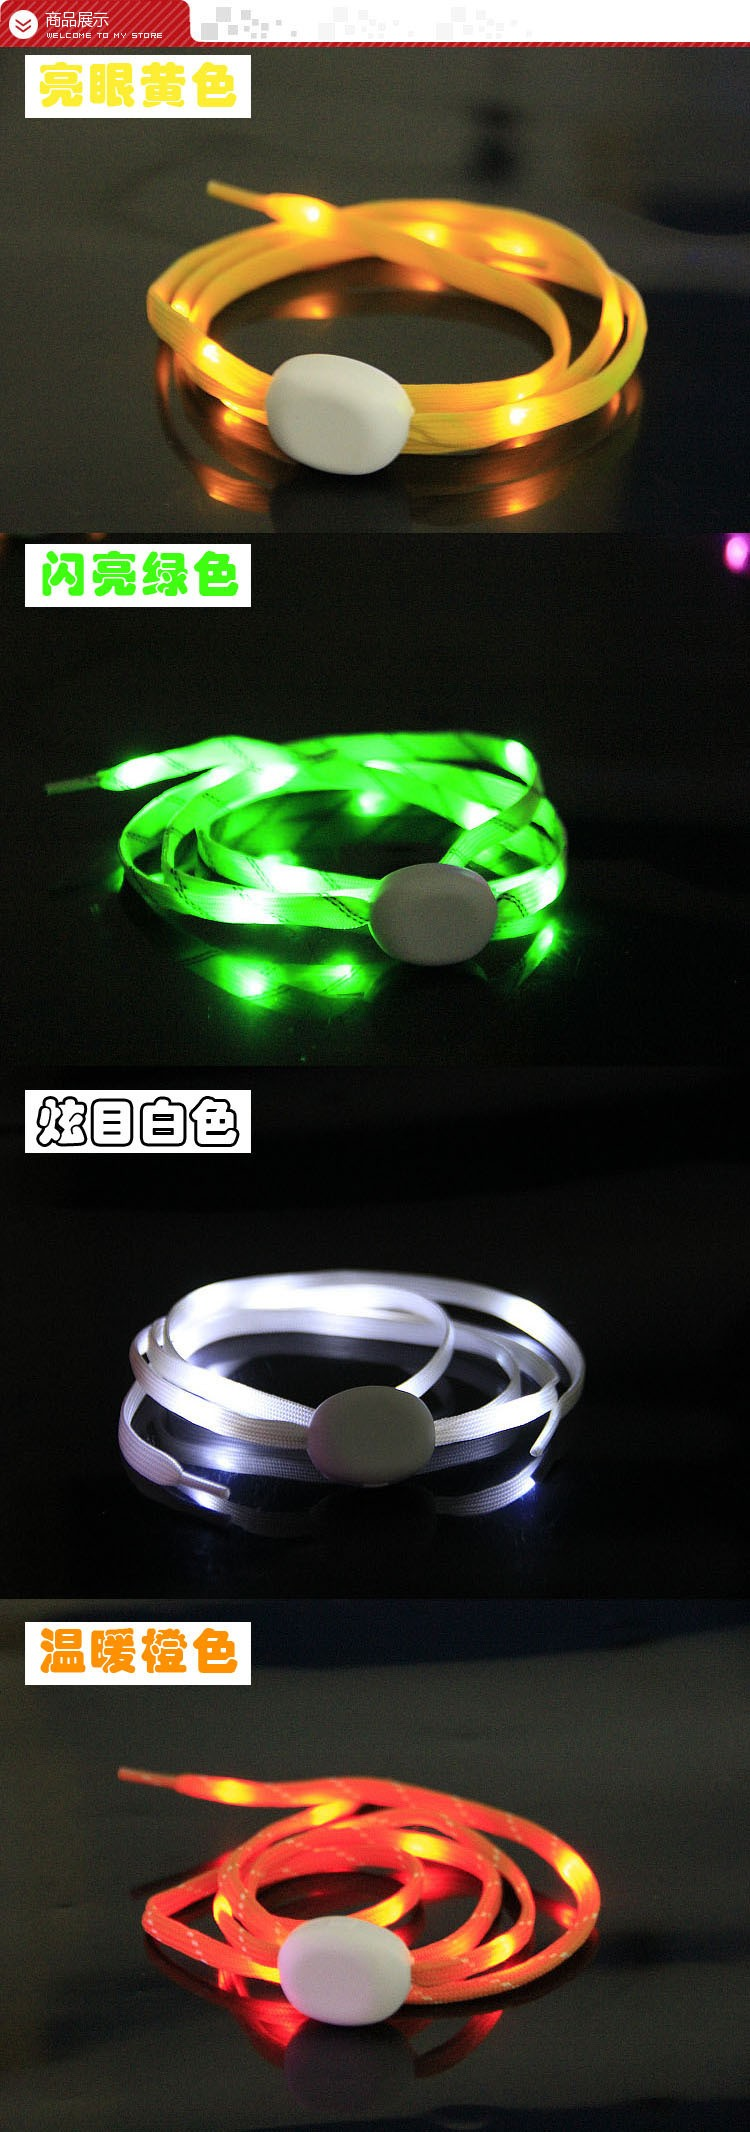 hot sale led flashing nylon shoelace with battery shoelace factory,light up led shoelace